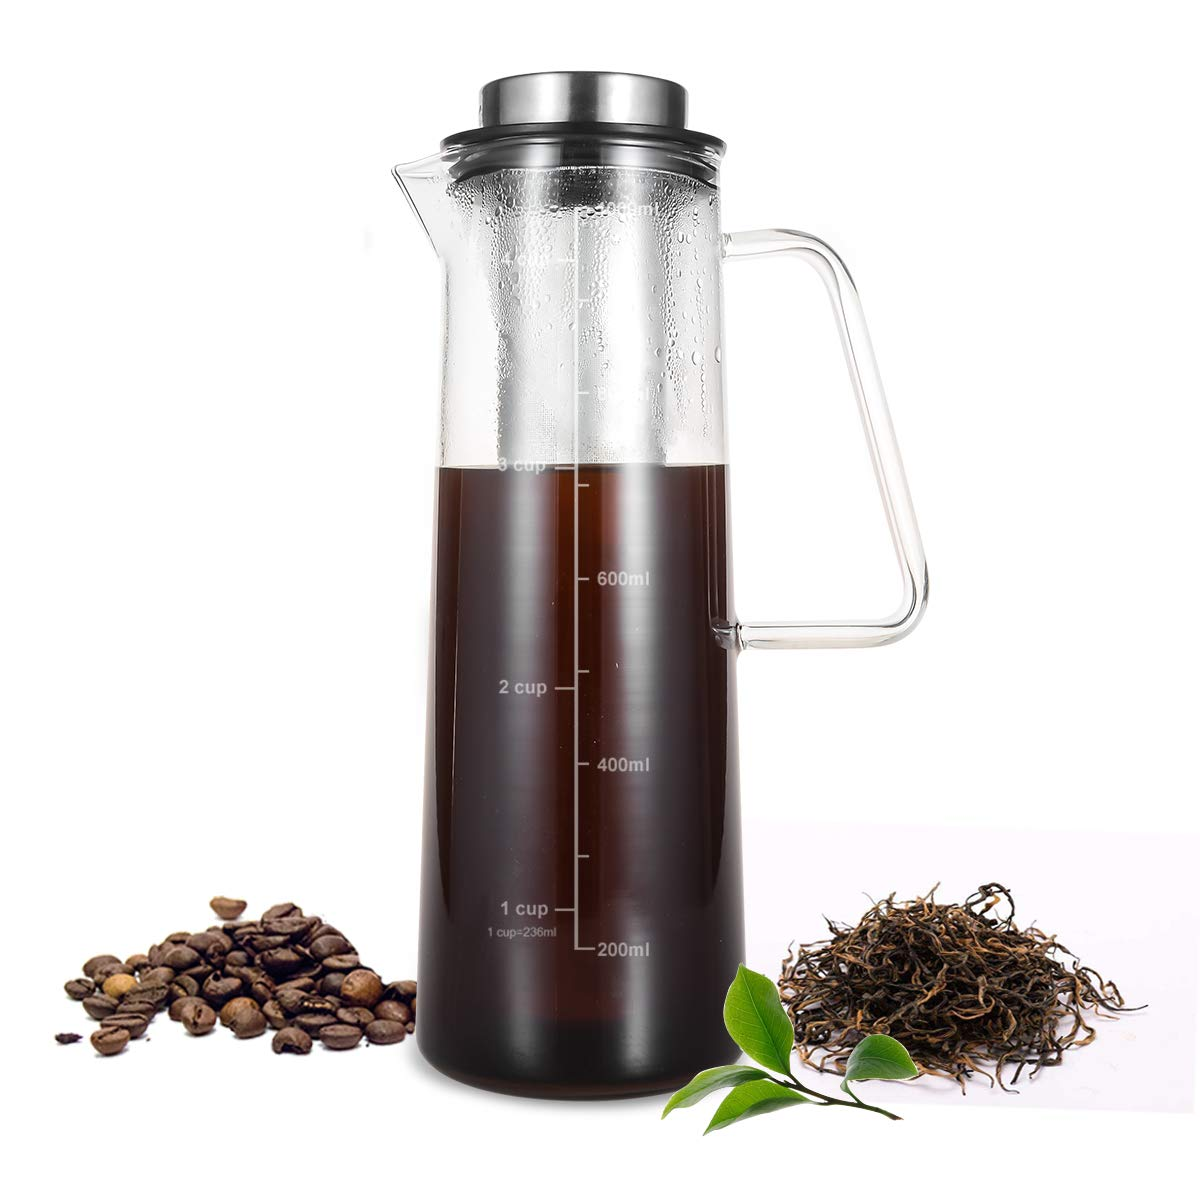 Cold Brew Coffee Maker, Brewed Iced Coffee/Tea Maker 1L/34oz, Thick Borosilicate Glass Carafe with Removable Stainless Steel Filter, BPA-Free